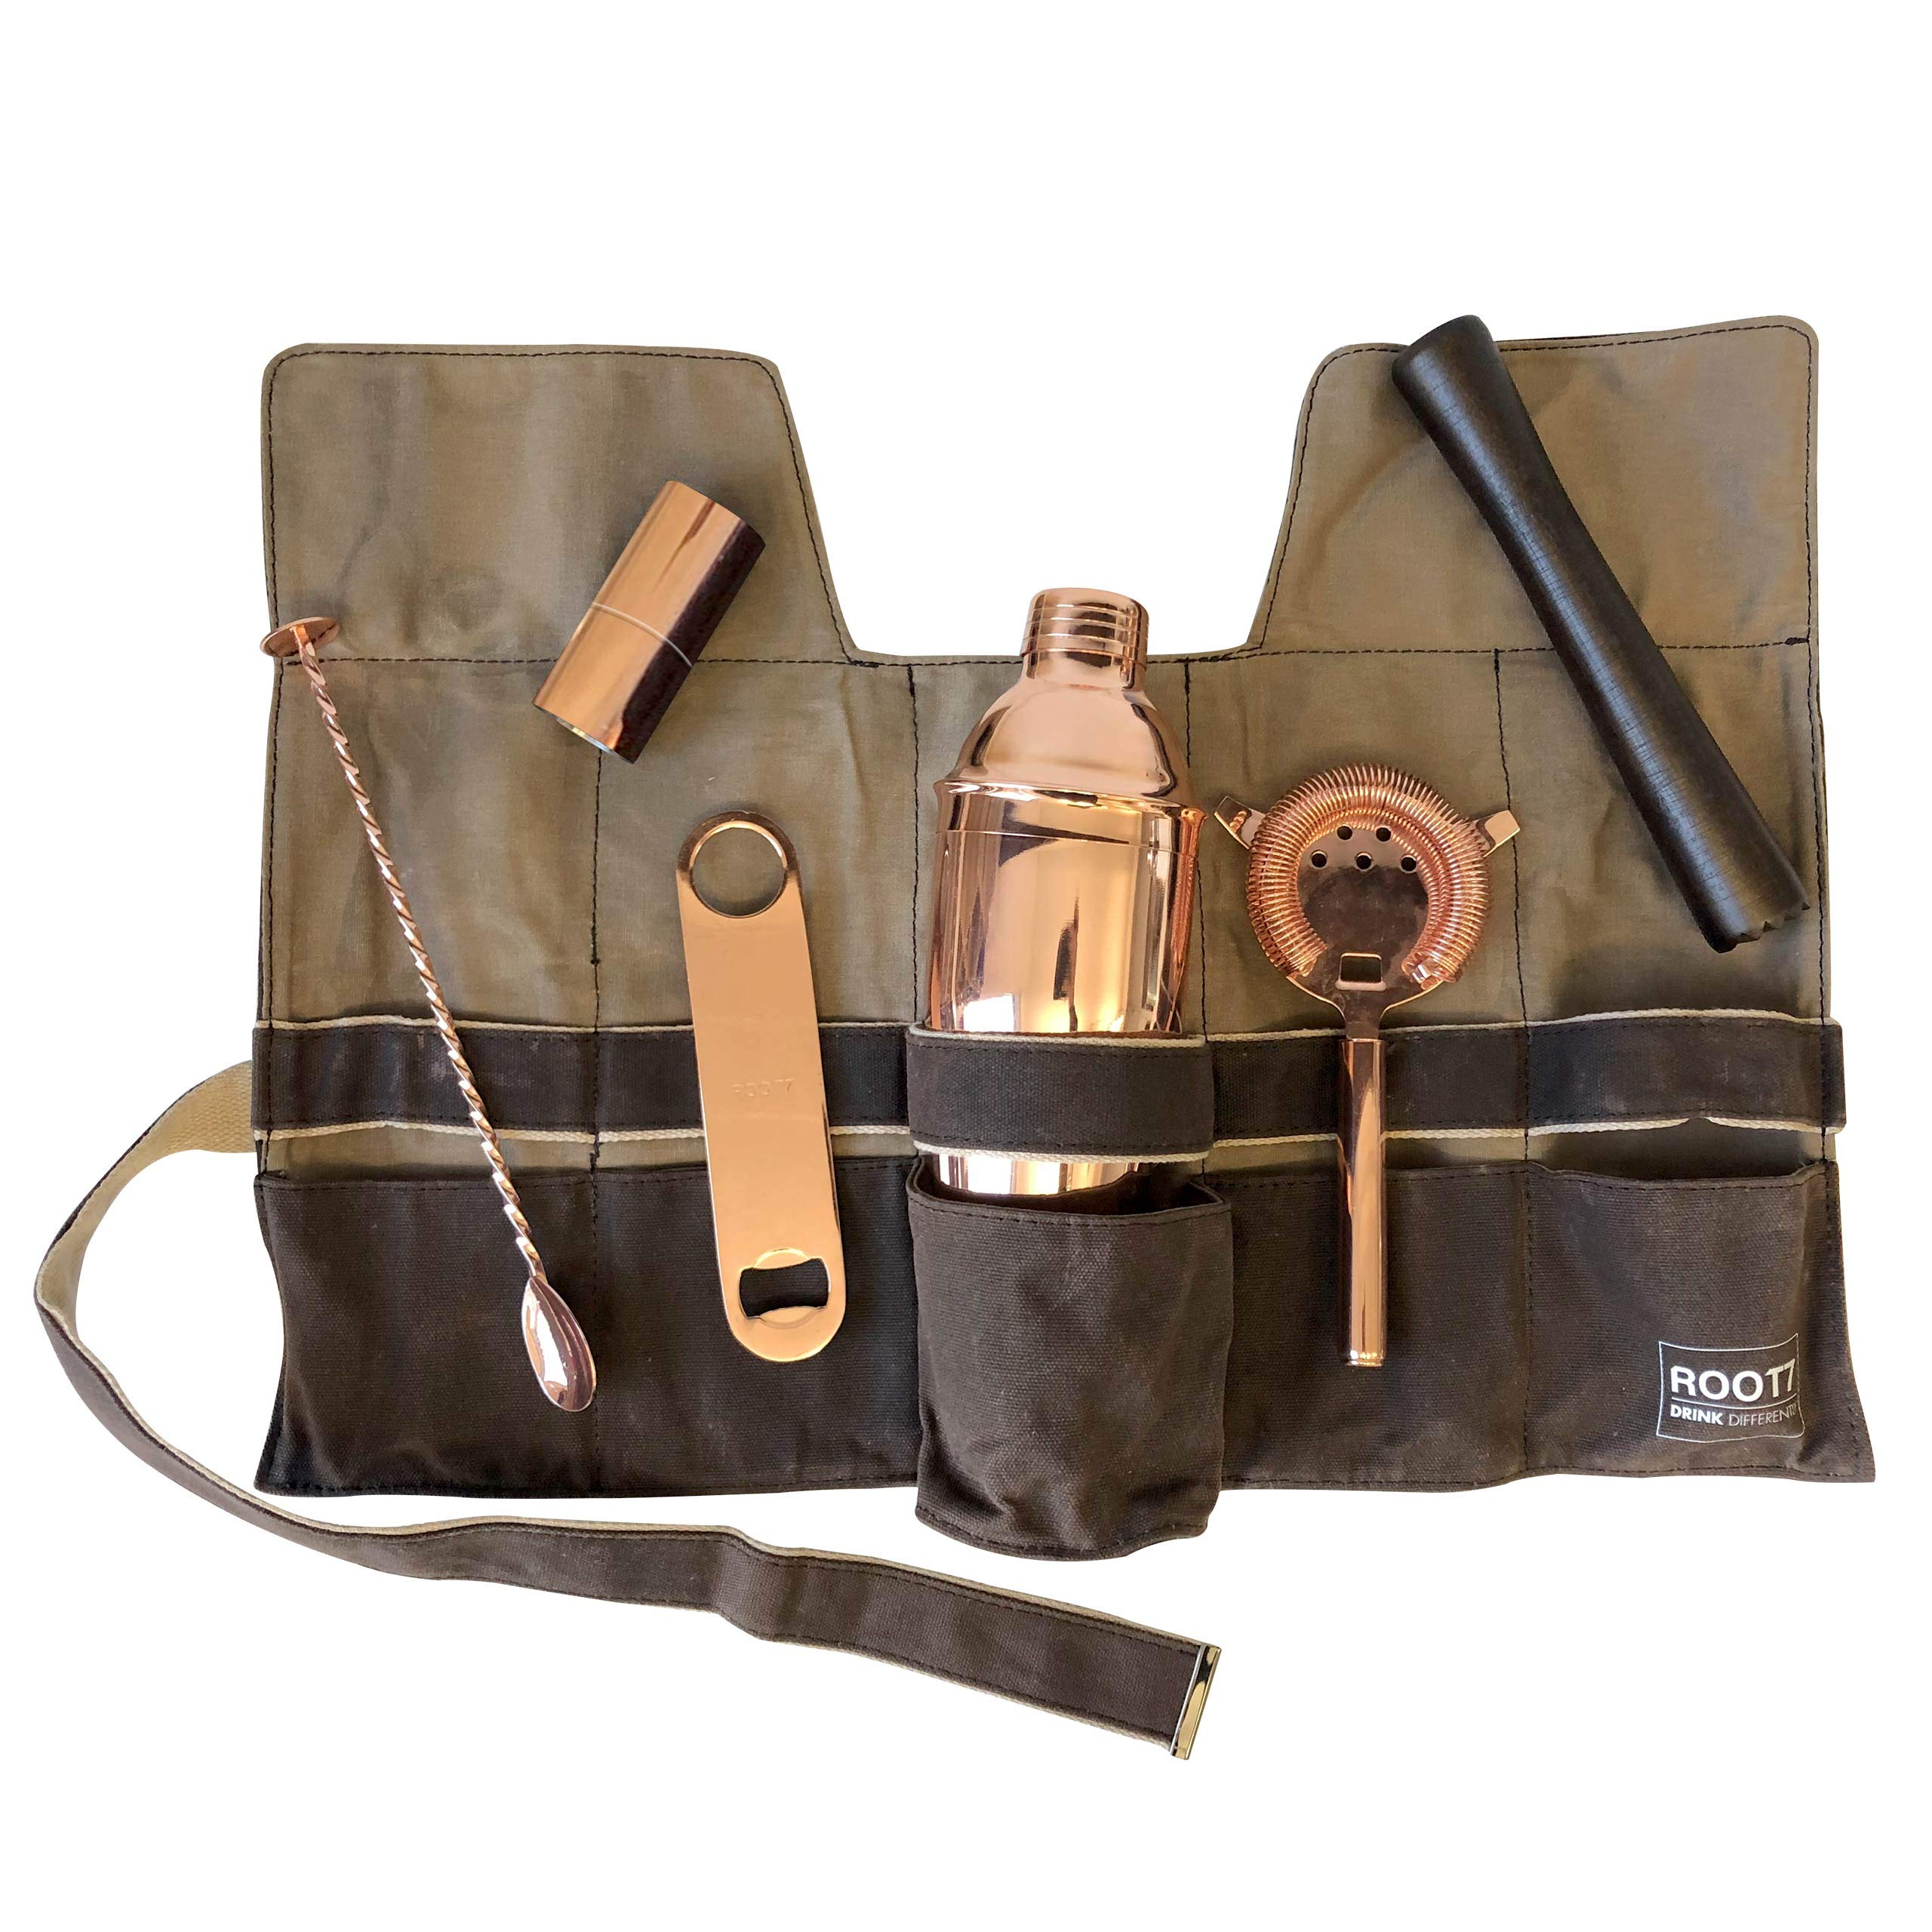 Premium Modern Copper Coated Professional Bartender Kit, Home and Workplace Cocktail Set, 19oz Shaker, Bar Blade, Jigger, Wood Muddler, Strainer, Spoon and Wax Canvas Bag by Root7 by Root7